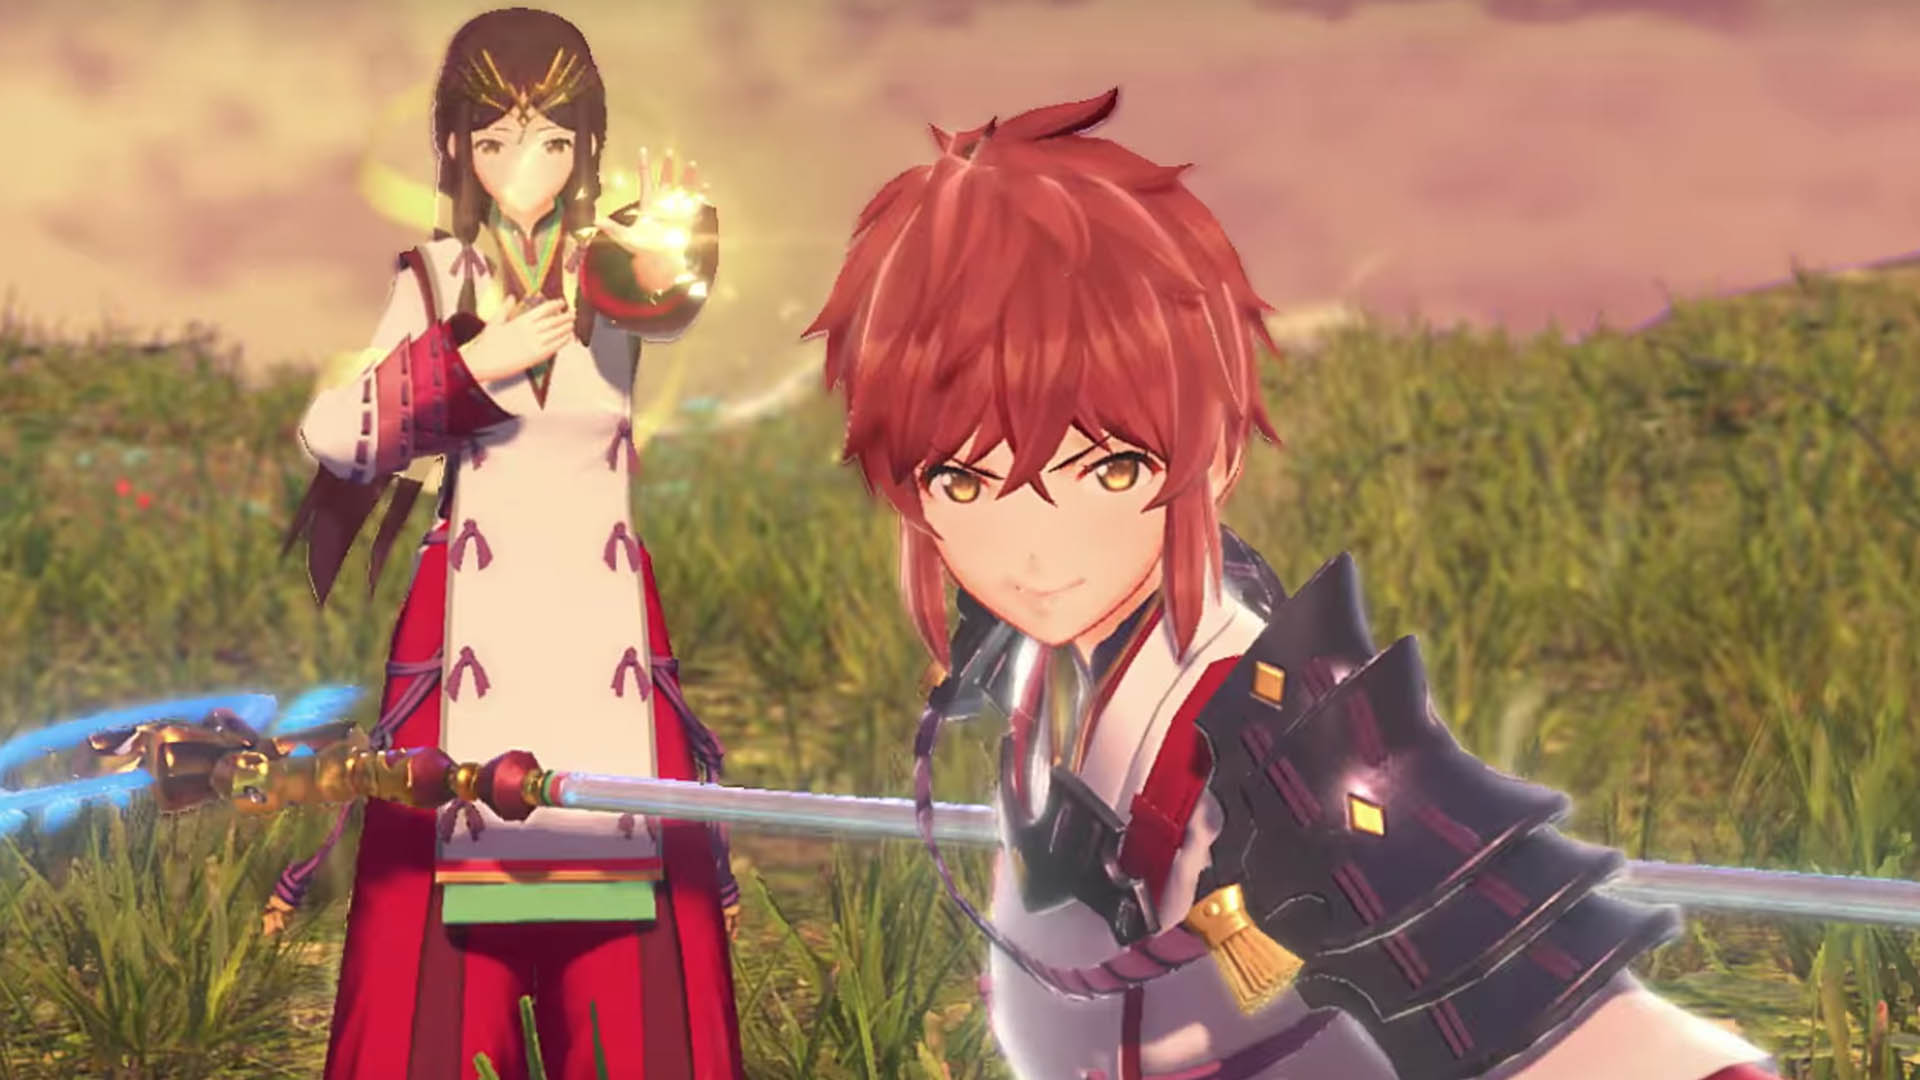 Xenoblade Chronicles 2 Director Offers Production Notes On Torna